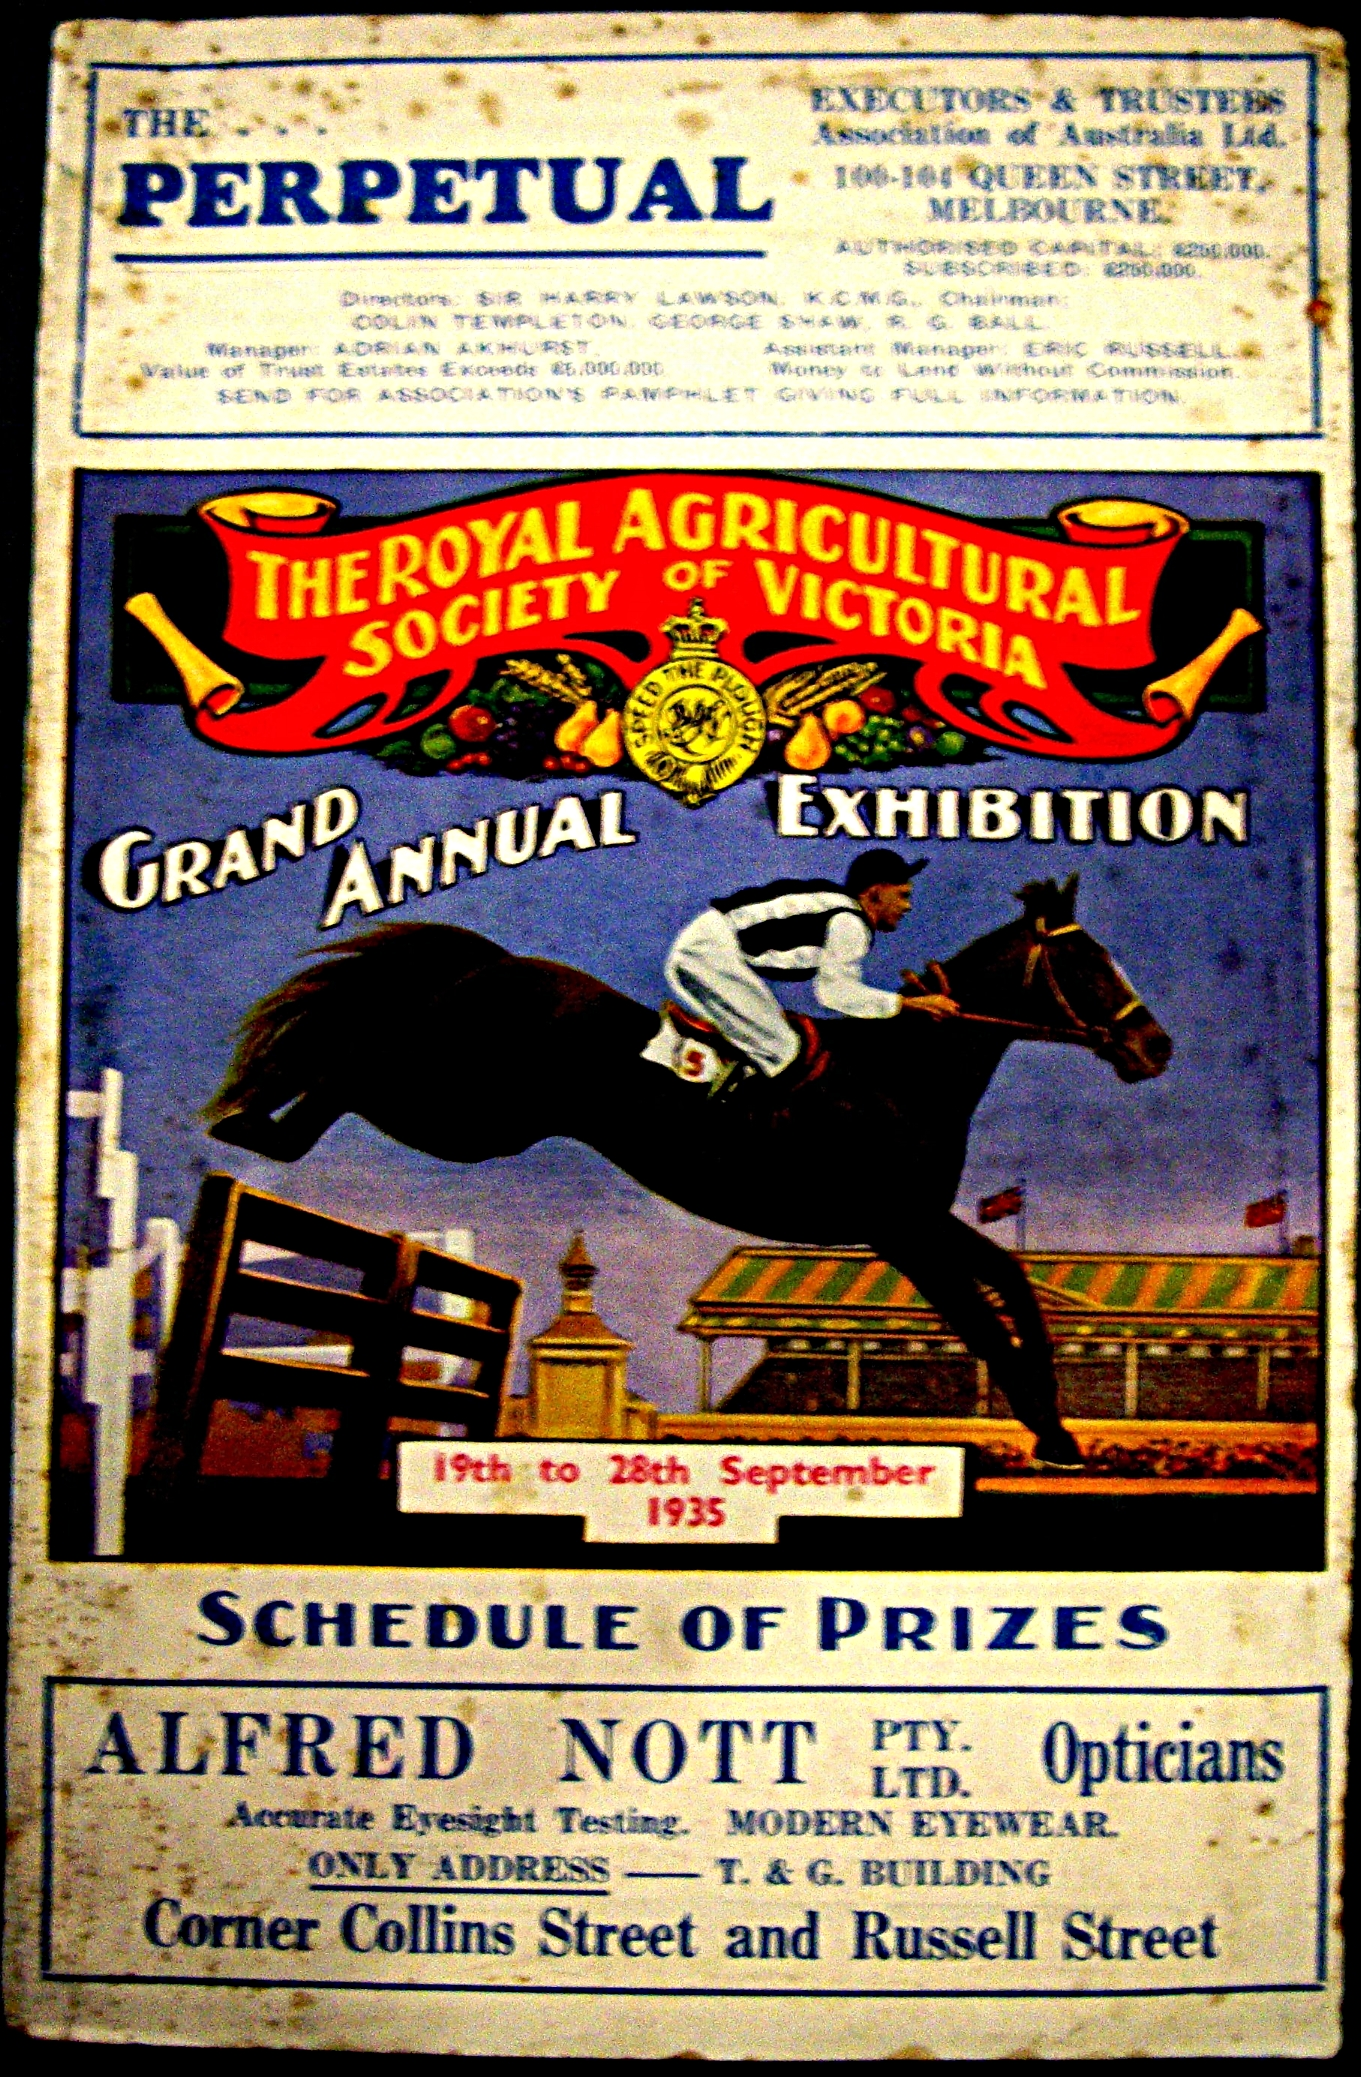 The RASV's Gran Annual Exhibition Schedule of Prizes for 1935